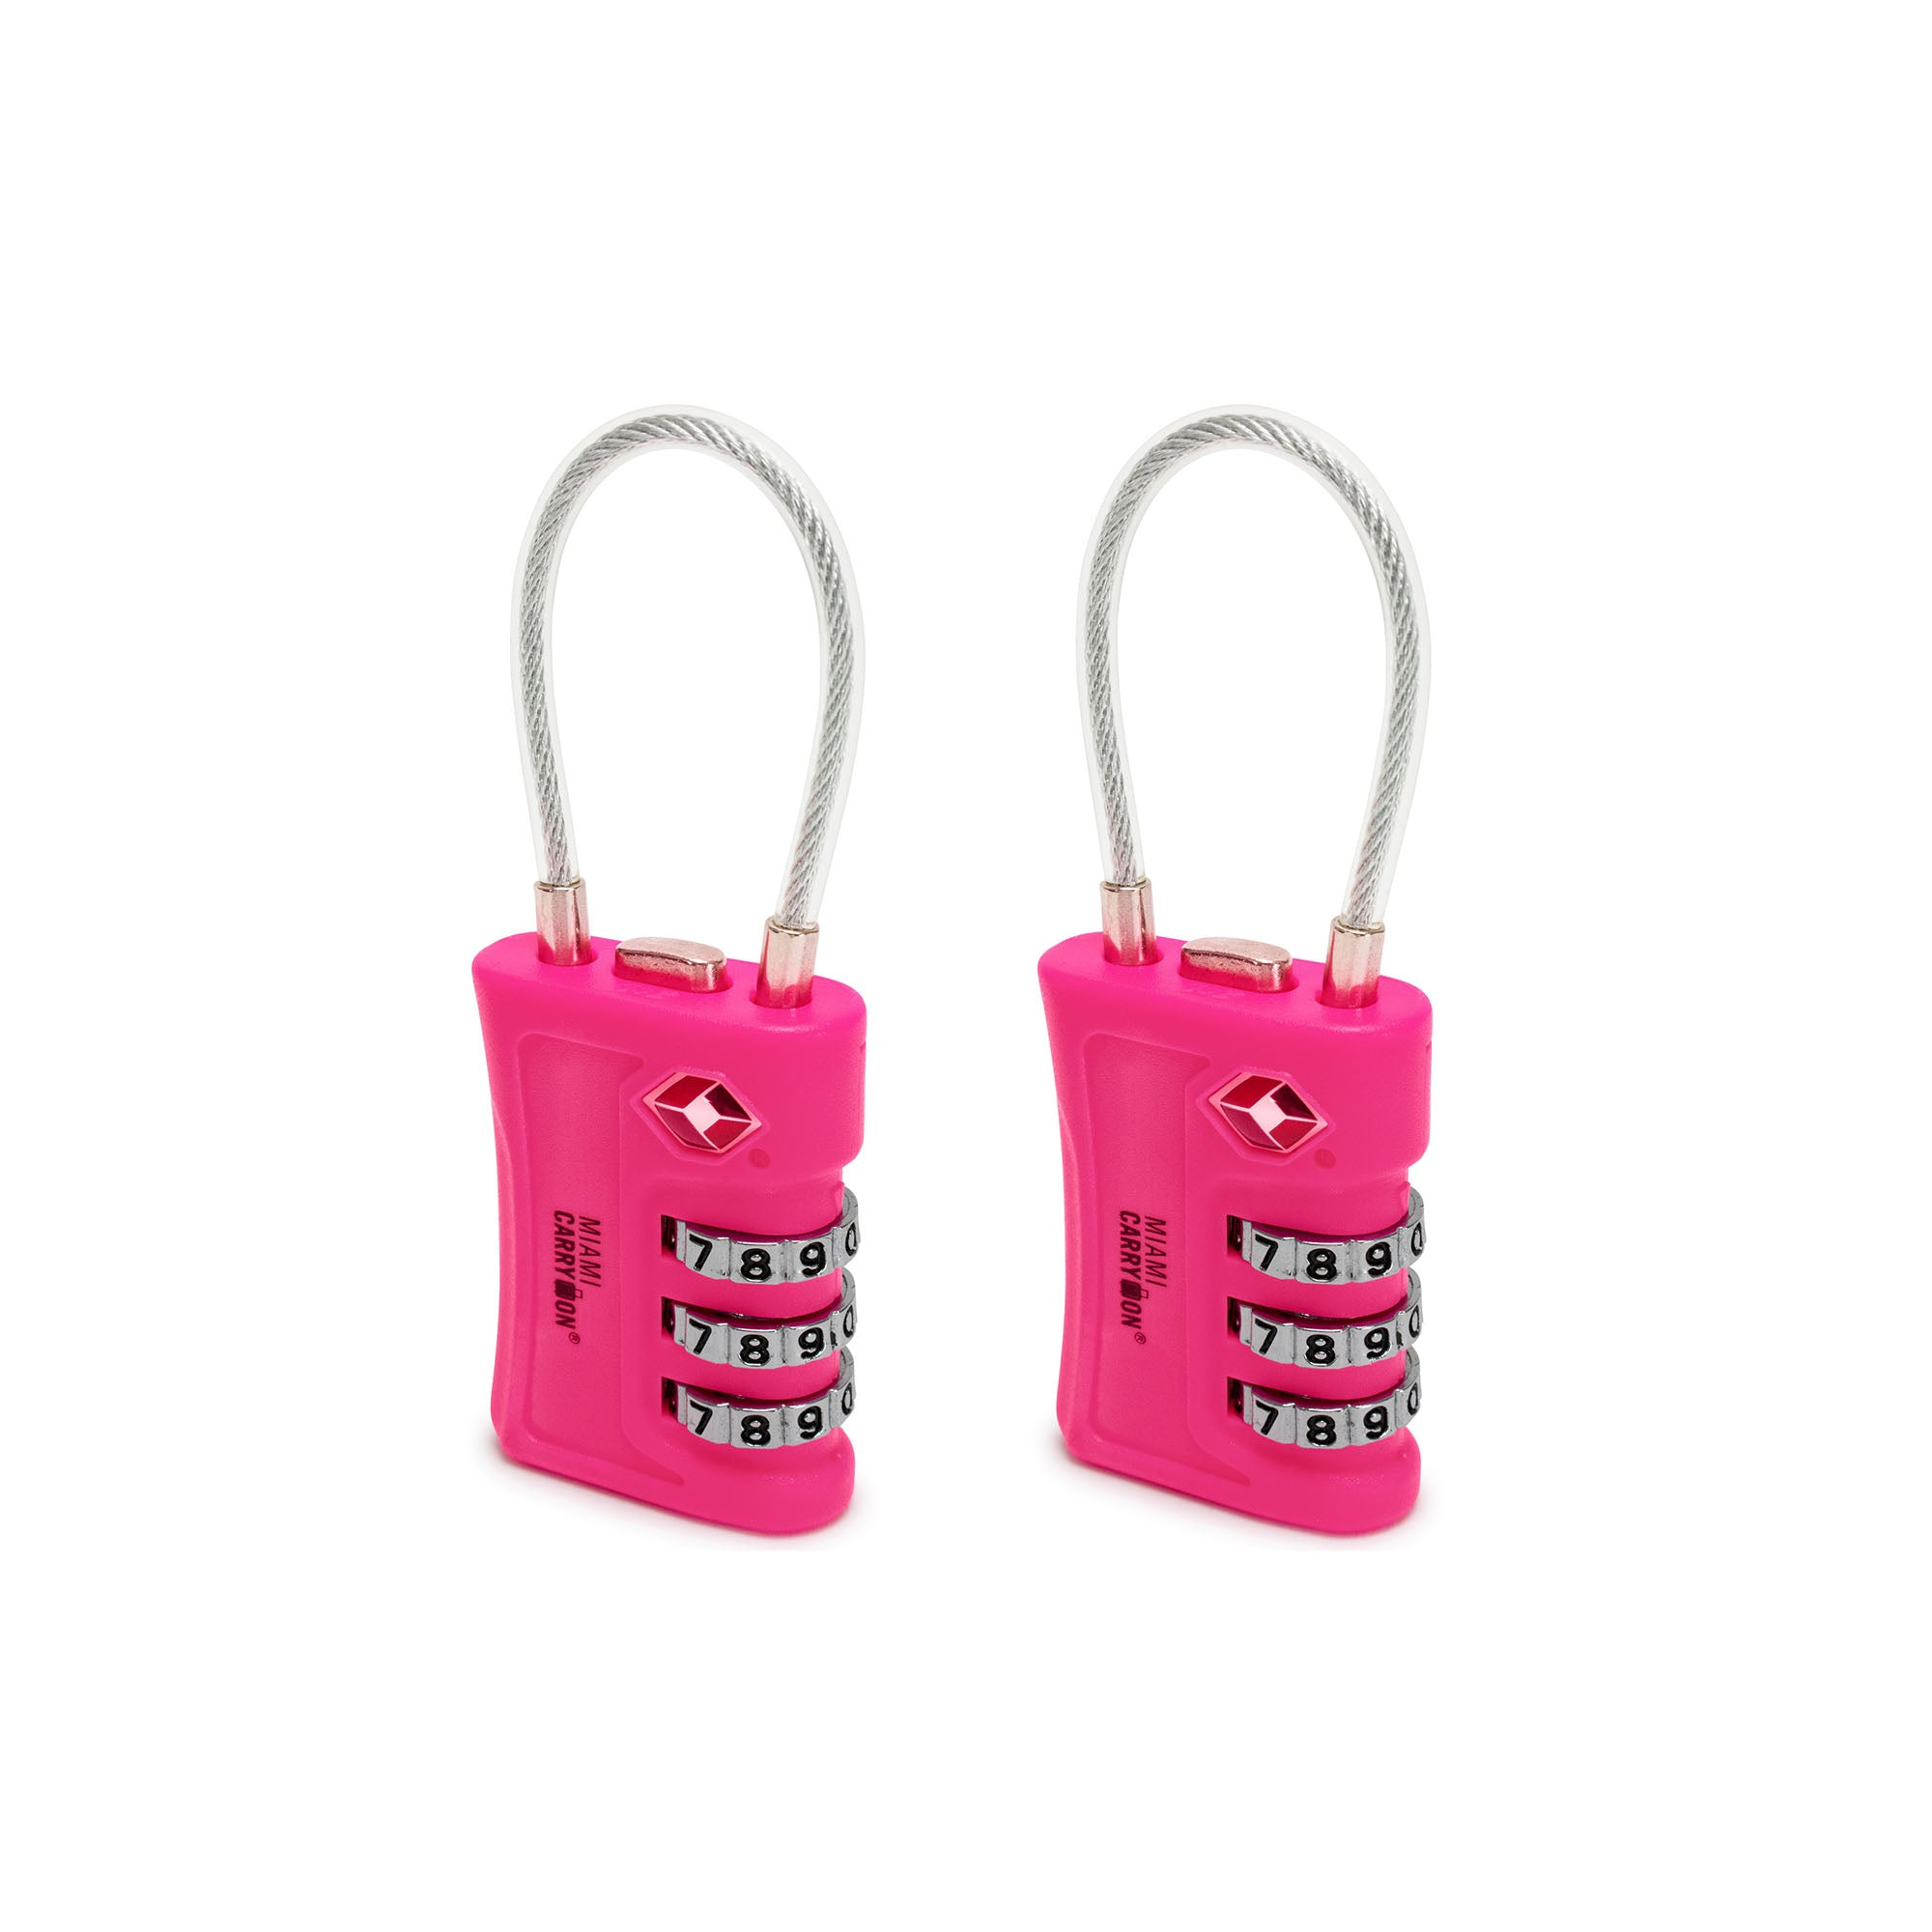 TSA Approved Cable Combination Padlock [VALUE SET] - Pink / 2 Pack - Travellty